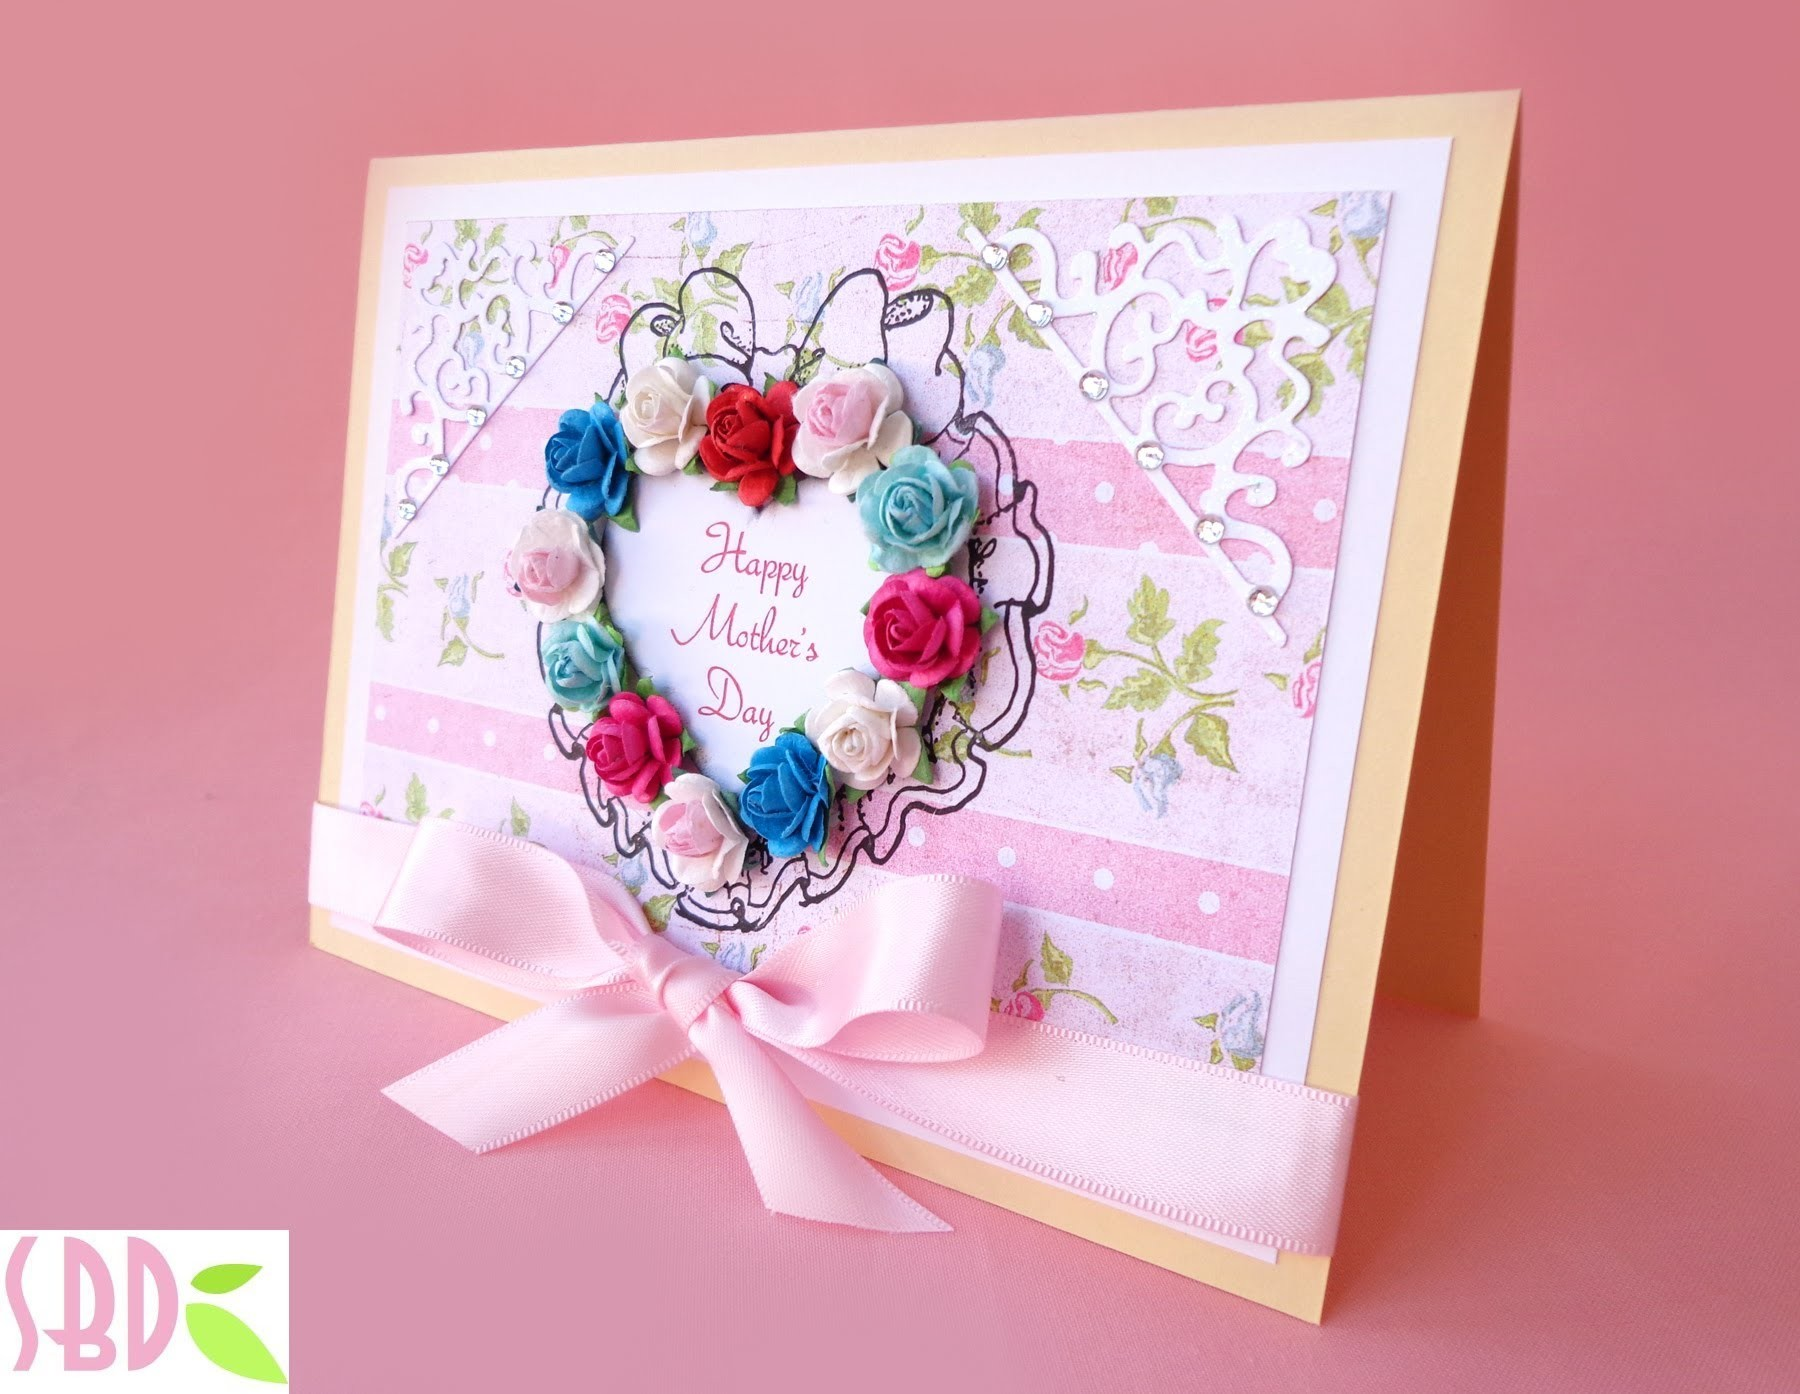 Card Festa della Mamma - Mother's Day Card